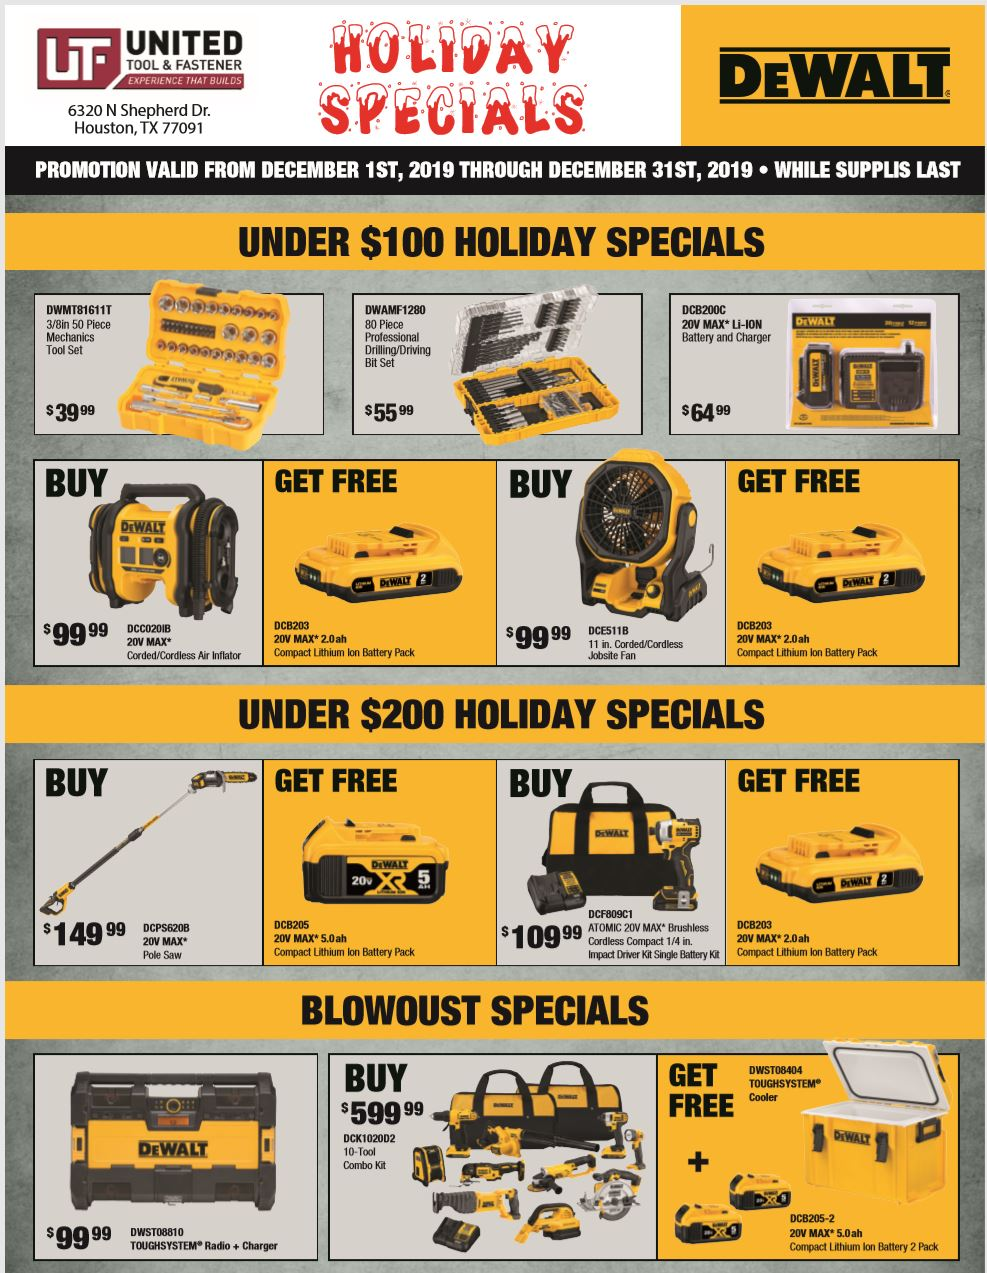 DeWalt 2019 Holiday Specials